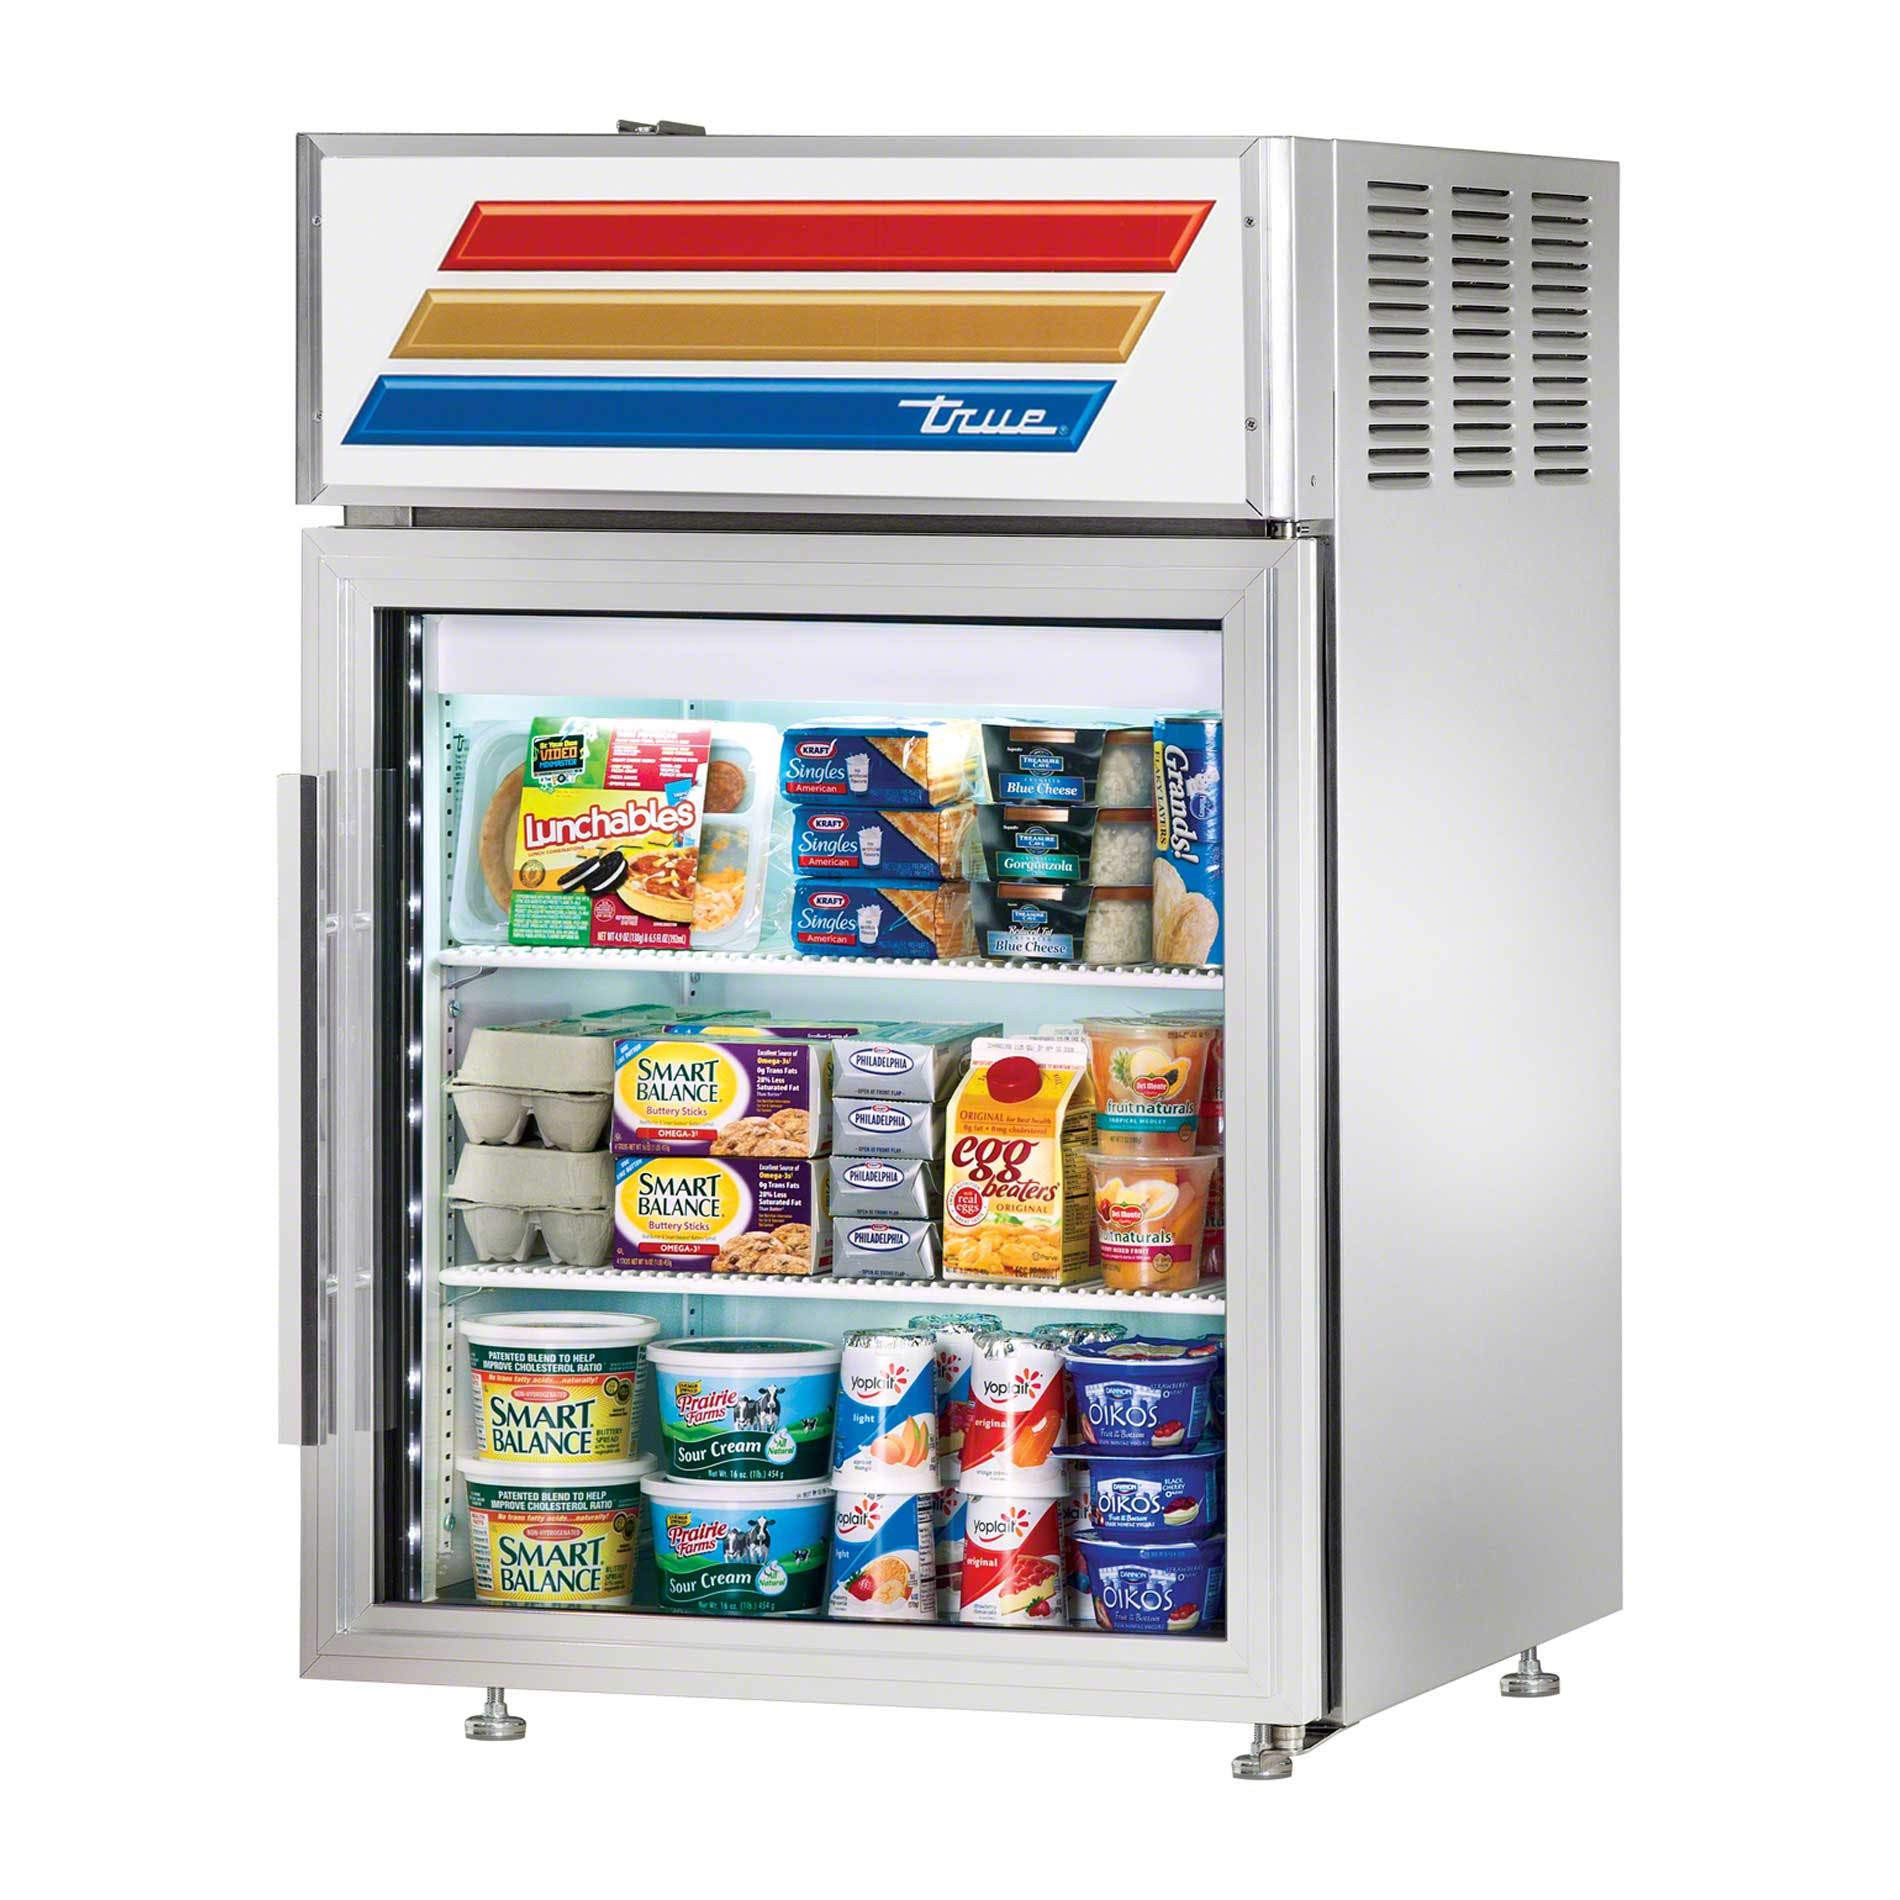 "True - GDM-5PT-S-LD 24"" Swing Door Countertop Merchandiser Refrigerator LED Commercial refrigerator sold by Food Service Warehouse"